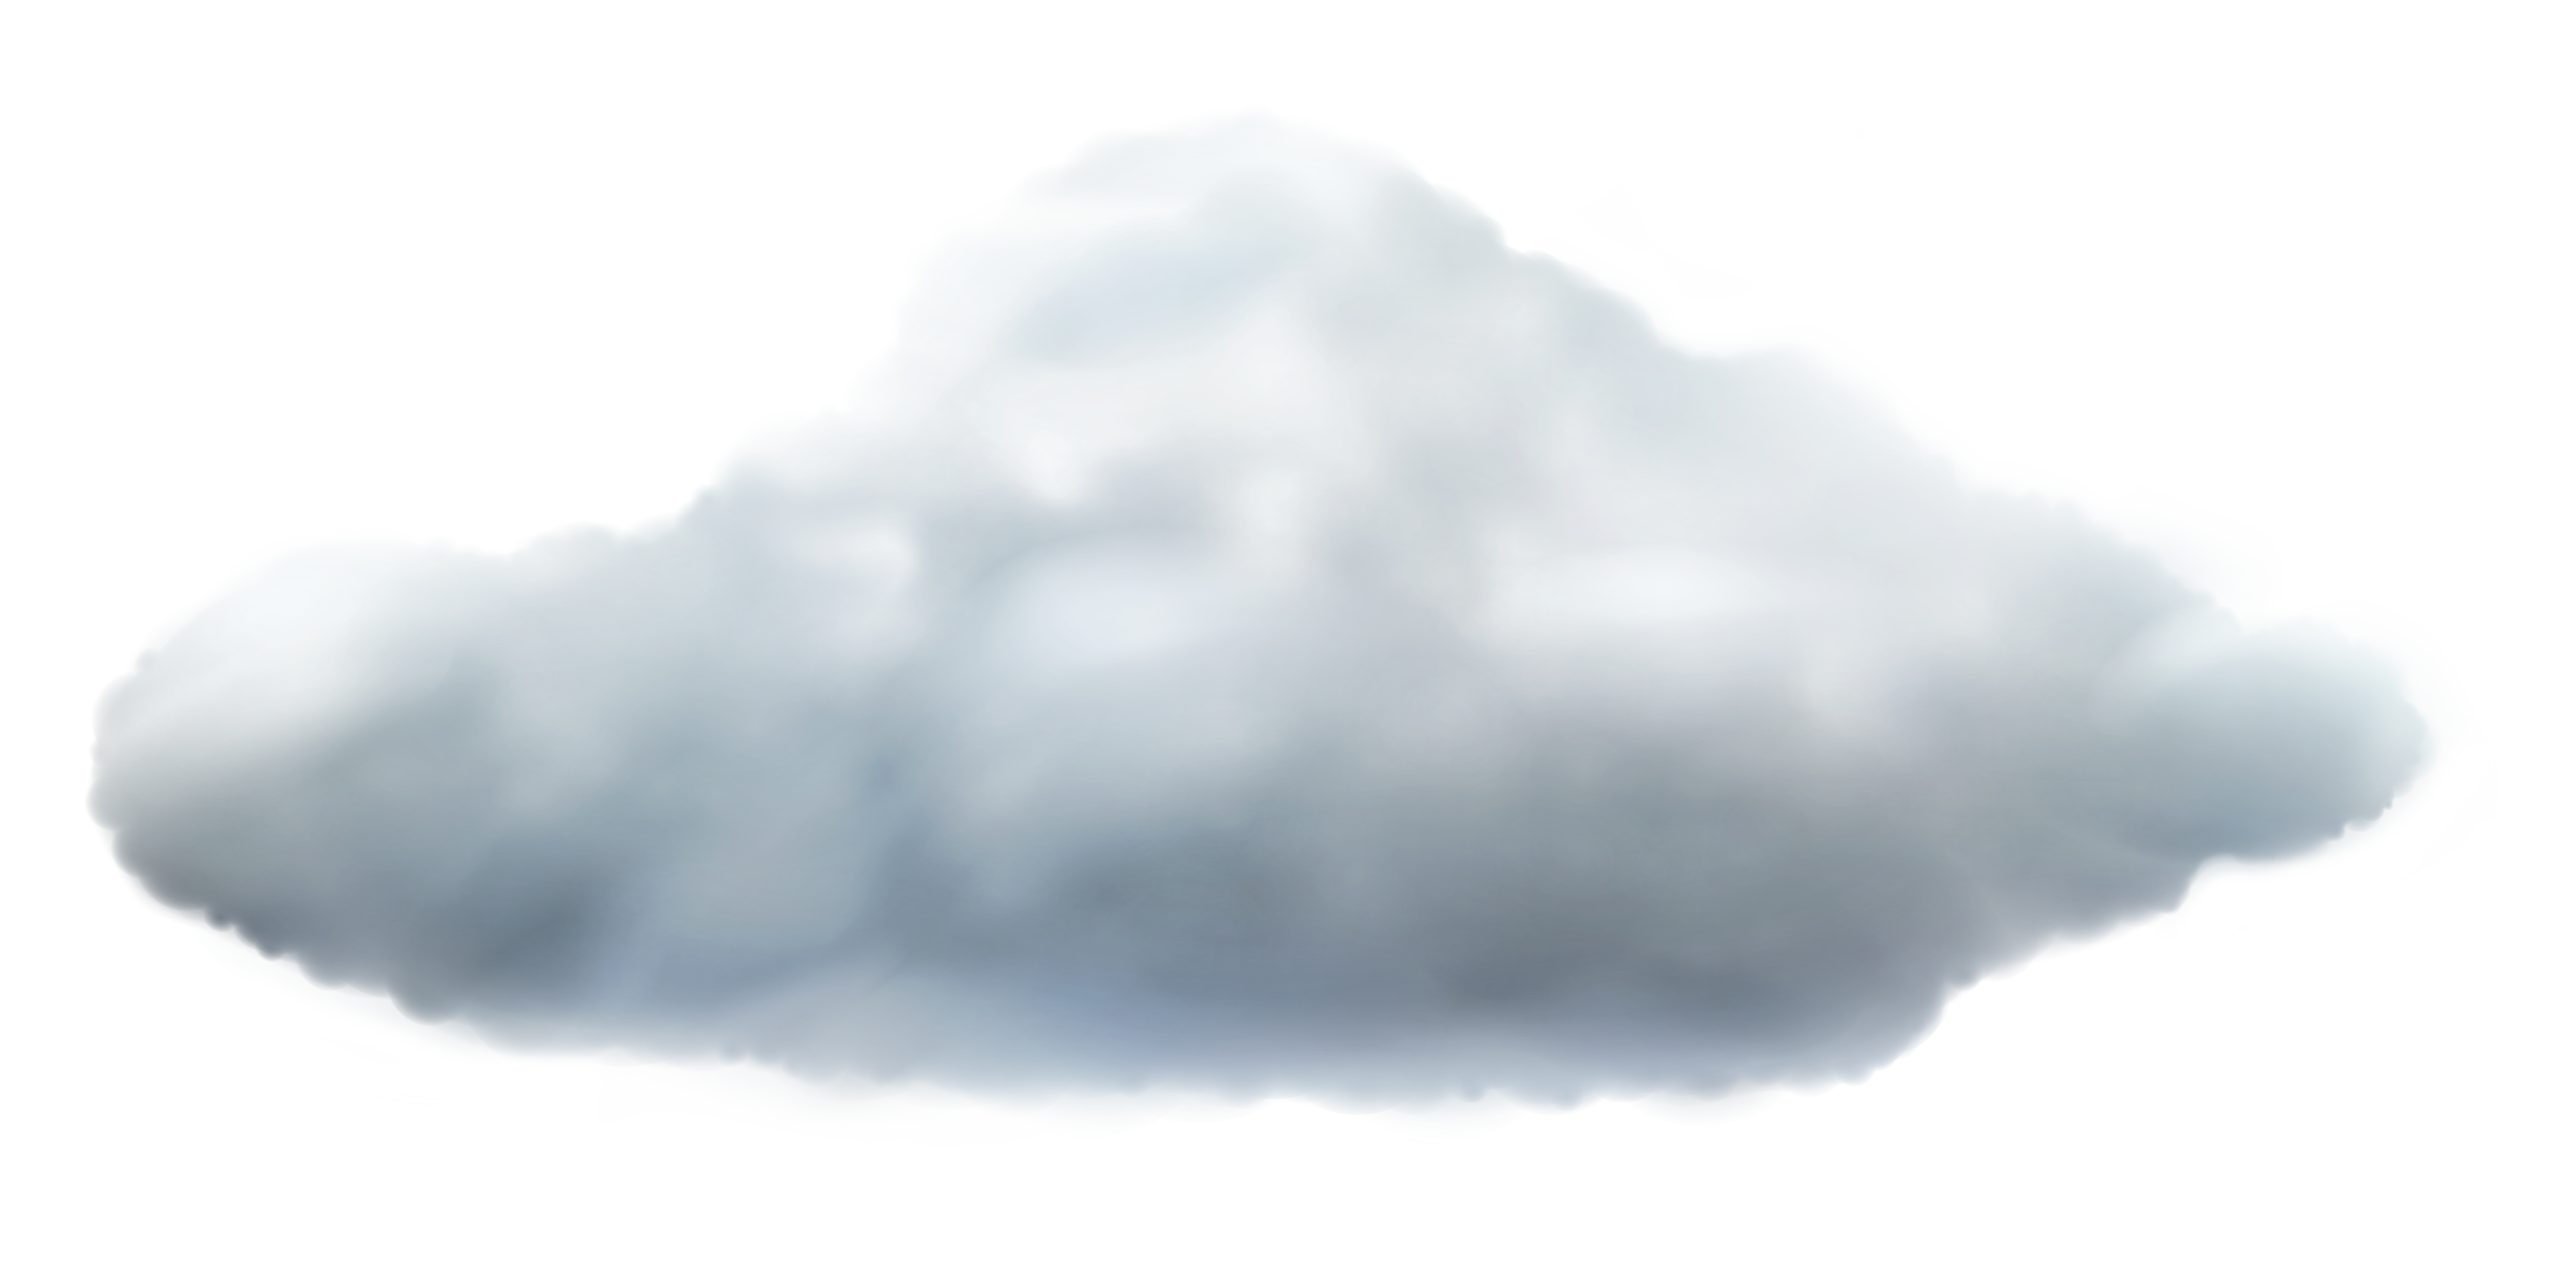 Cloud png images. Clip art image gallery